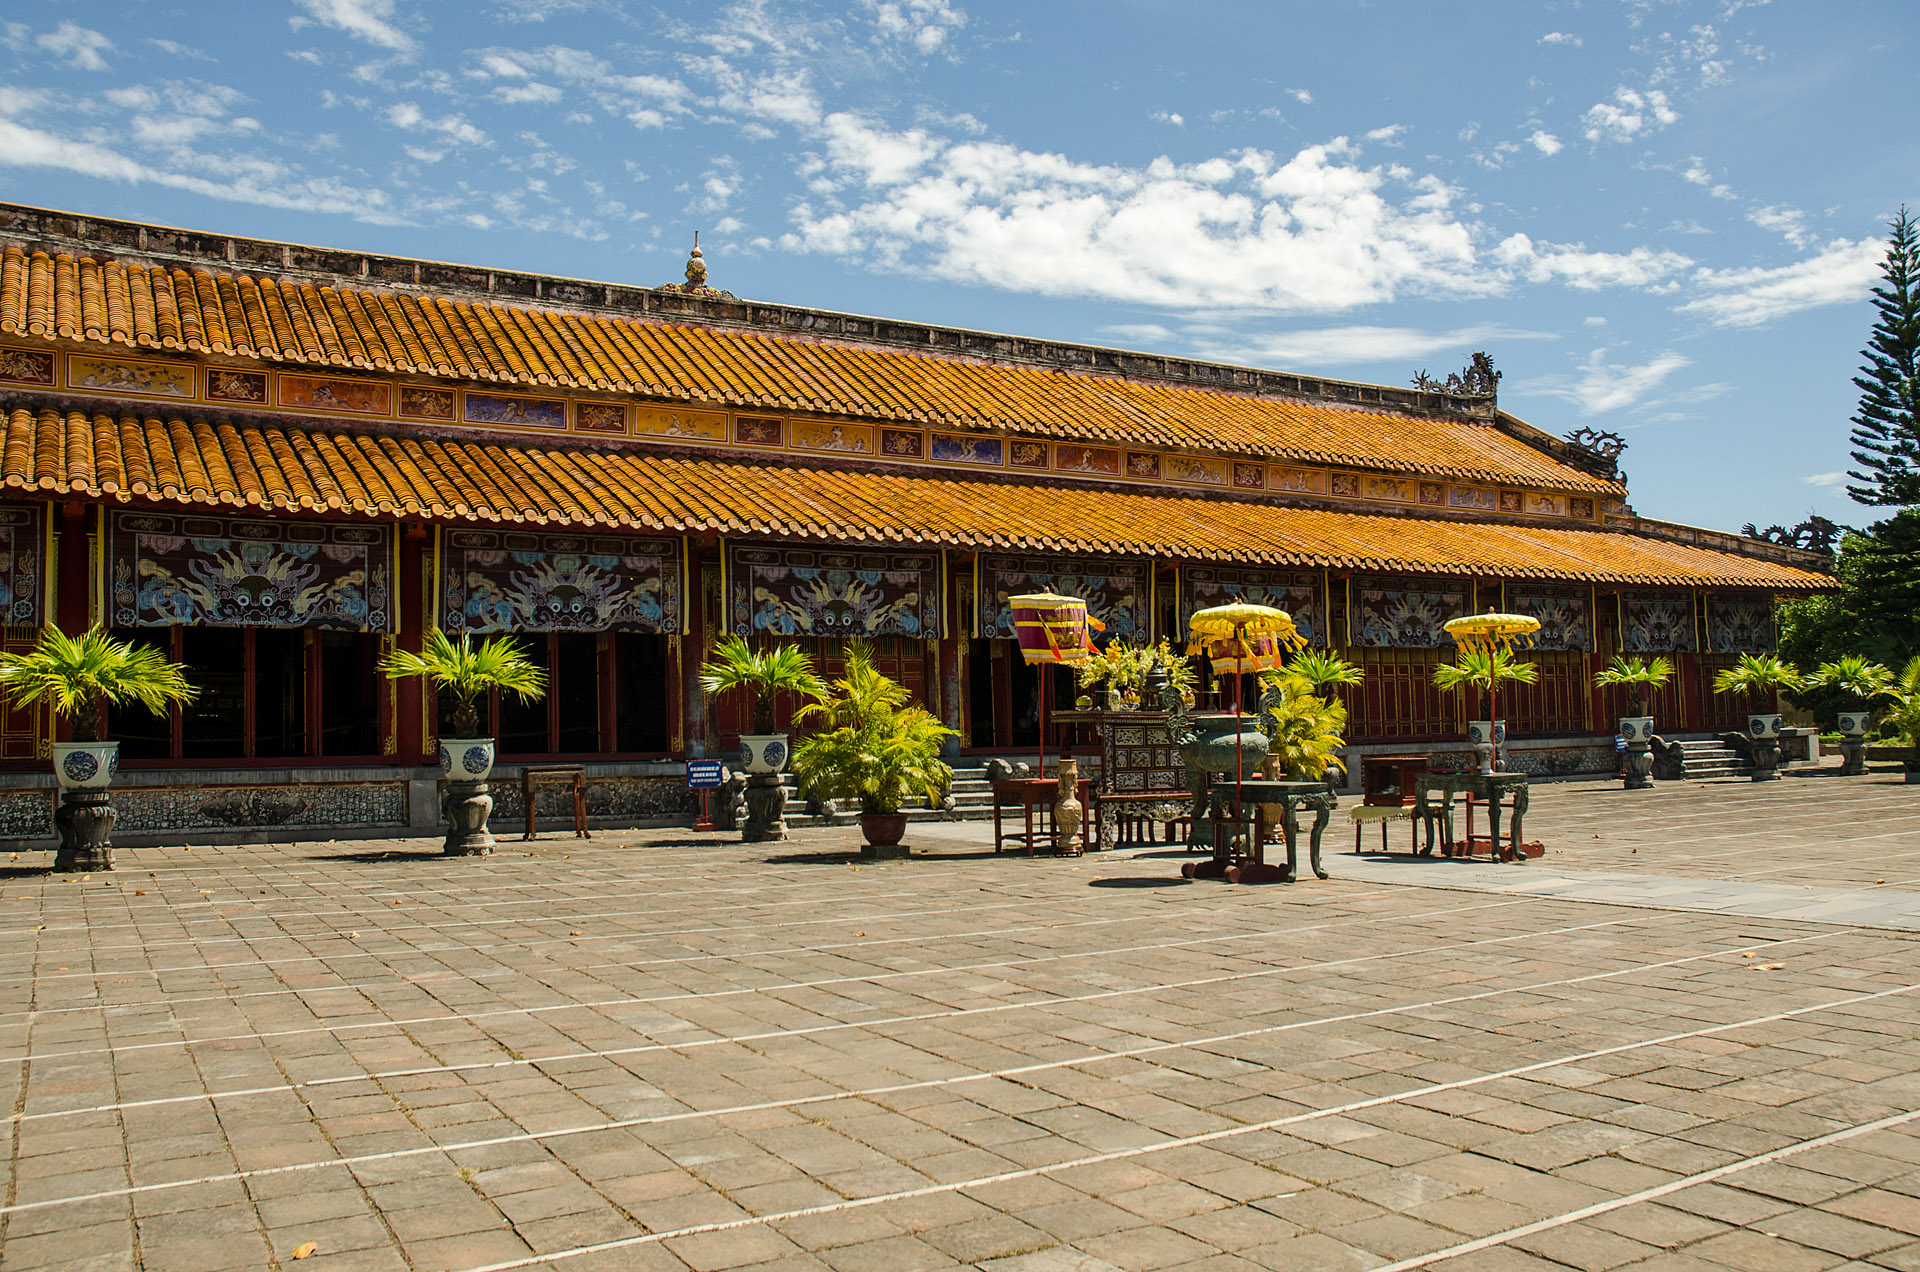 Hung Mieu Temple